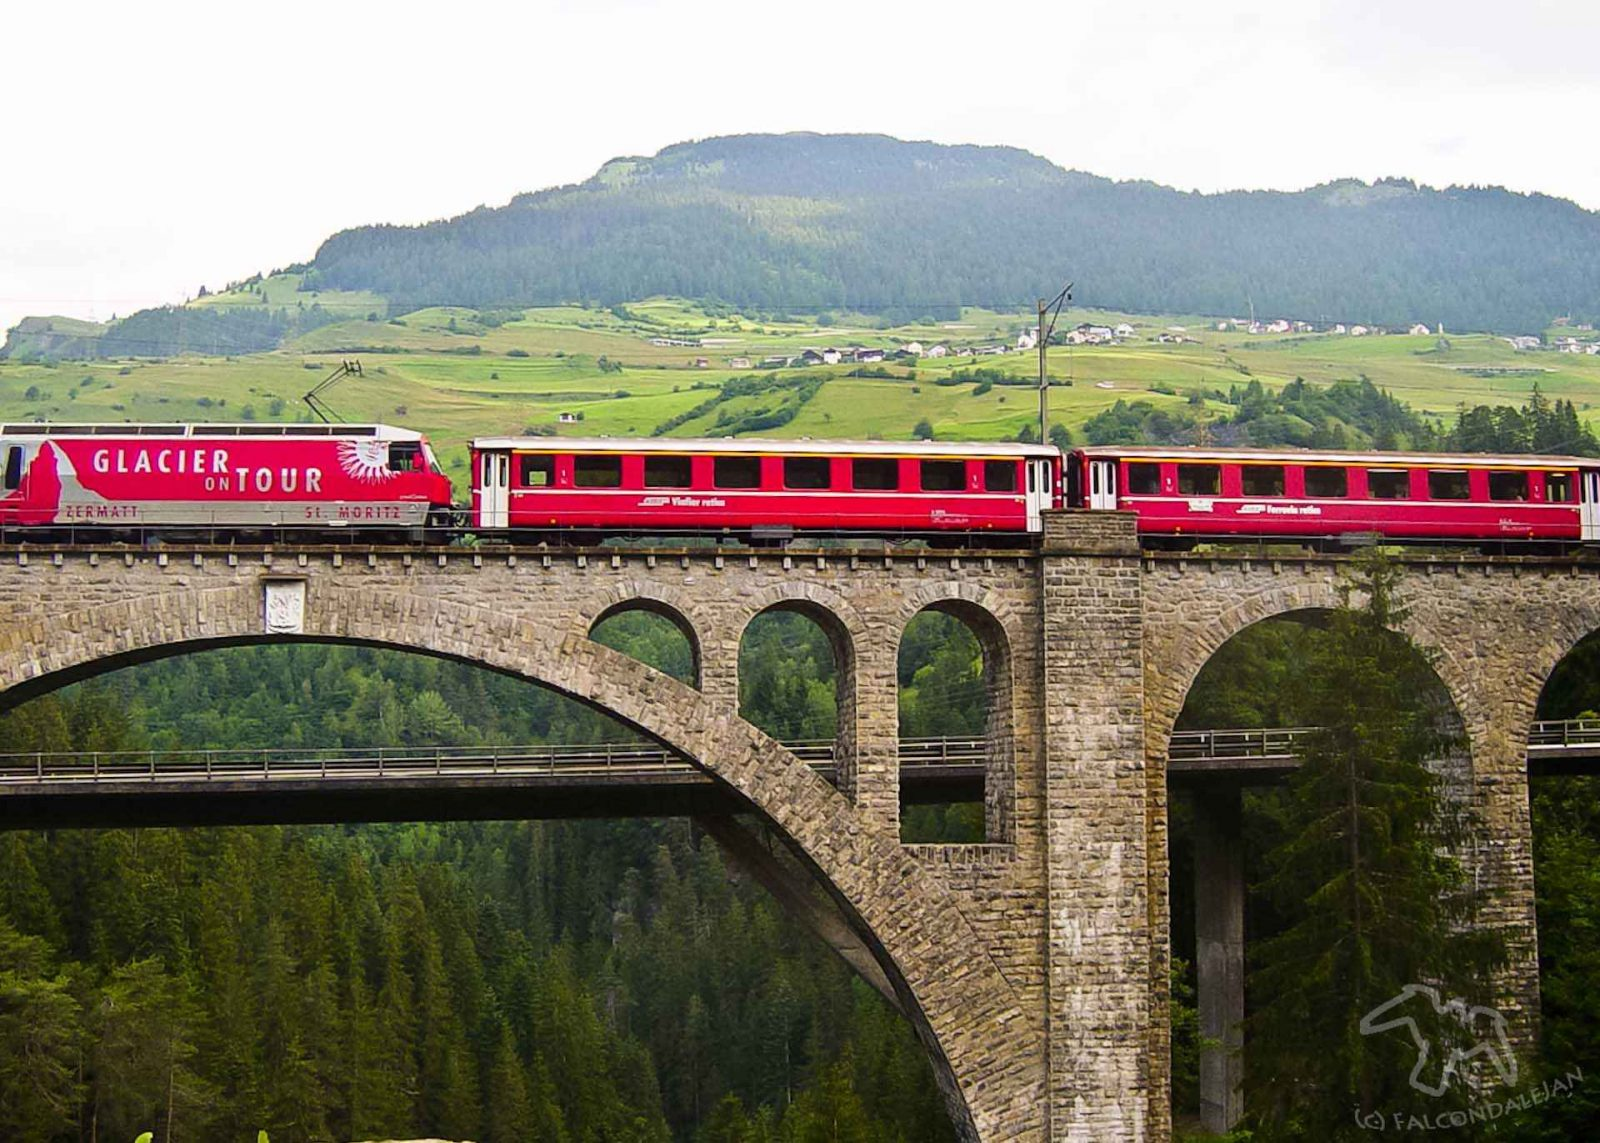 Glacier express on a Swiss Viaduct. The Five Best things about a scenic Swiss Rail Journey on Falcondale Life blog. Image credit David T. The beauty of a Swiss Rail Journey taken as a self guided tour is the perfect holiday for a rail enthusiast or anyone who enjoys stunning views of the Alps. Panoramic trains with breathtaking views of the Eiger and Jungfrau can be followed with a trip on the lake in a country full of cuckoo clock charm.